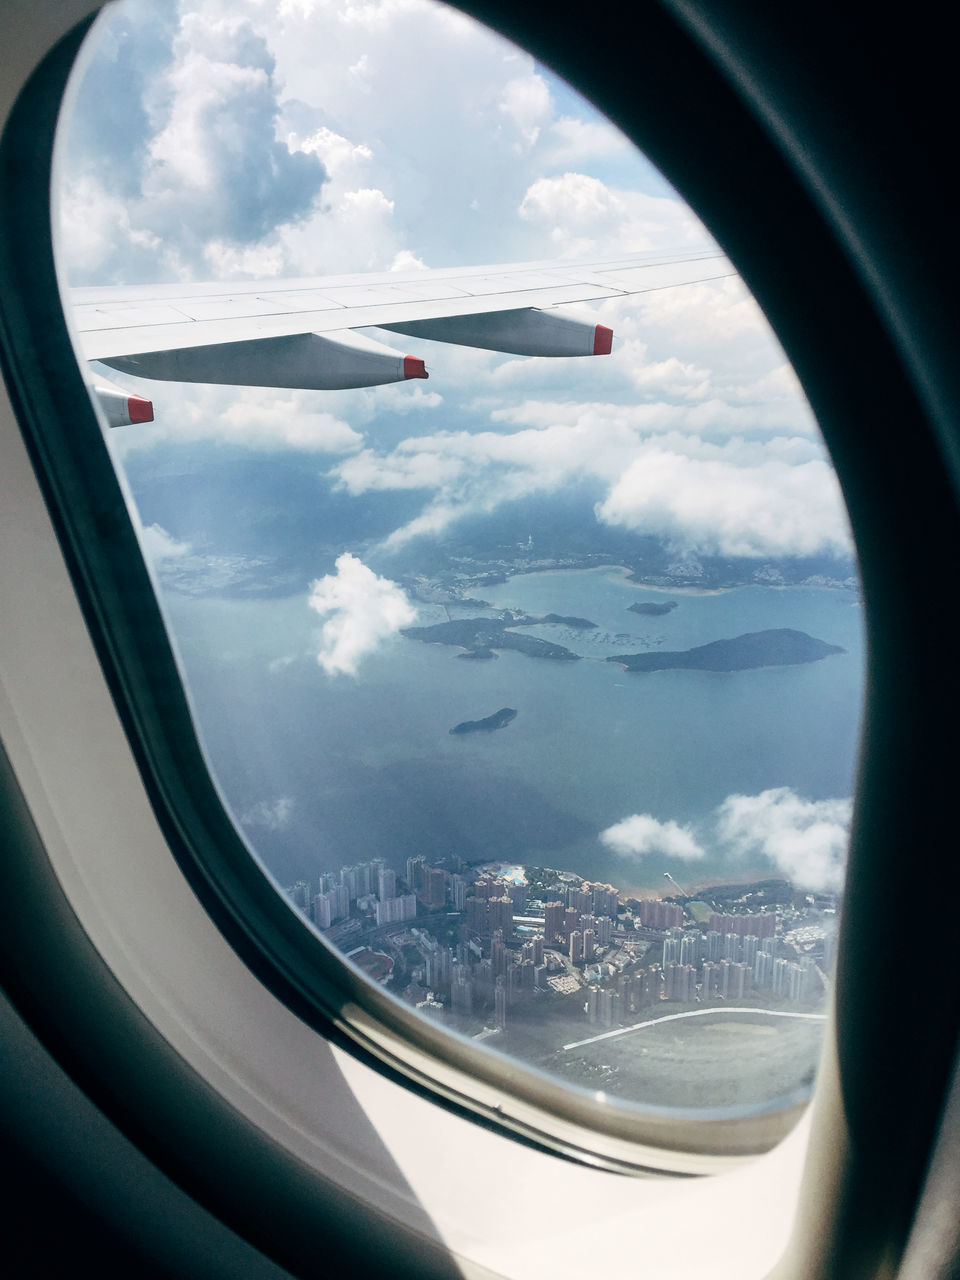 airplane, transportation, vehicle interior, sky, air vehicle, window, mode of transport, journey, travel, day, airplane wing, mid-air, cloud - sky, aerial view, flying, no people, vehicle part, cityscape, scenics, sea, landscape, nature, mountain, city, runway, close-up, outdoors